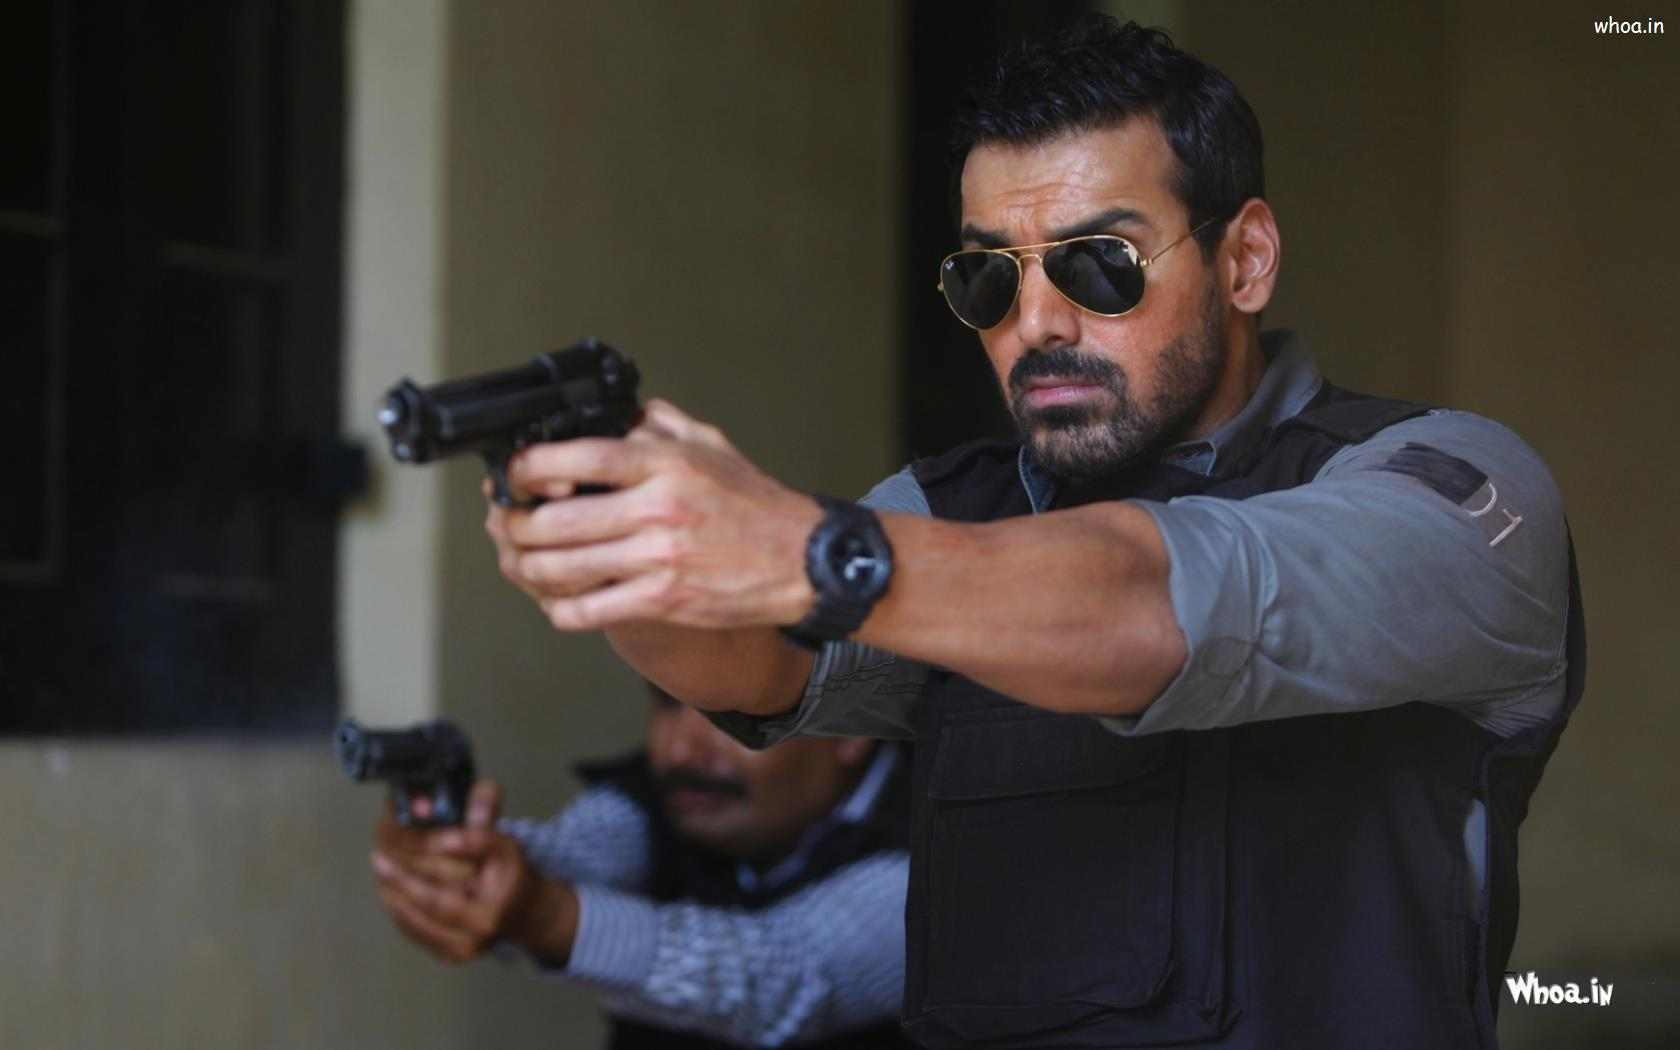 Hd wallpaper john abraham - John Abraham In Madras Cafe Hd Wallpaper